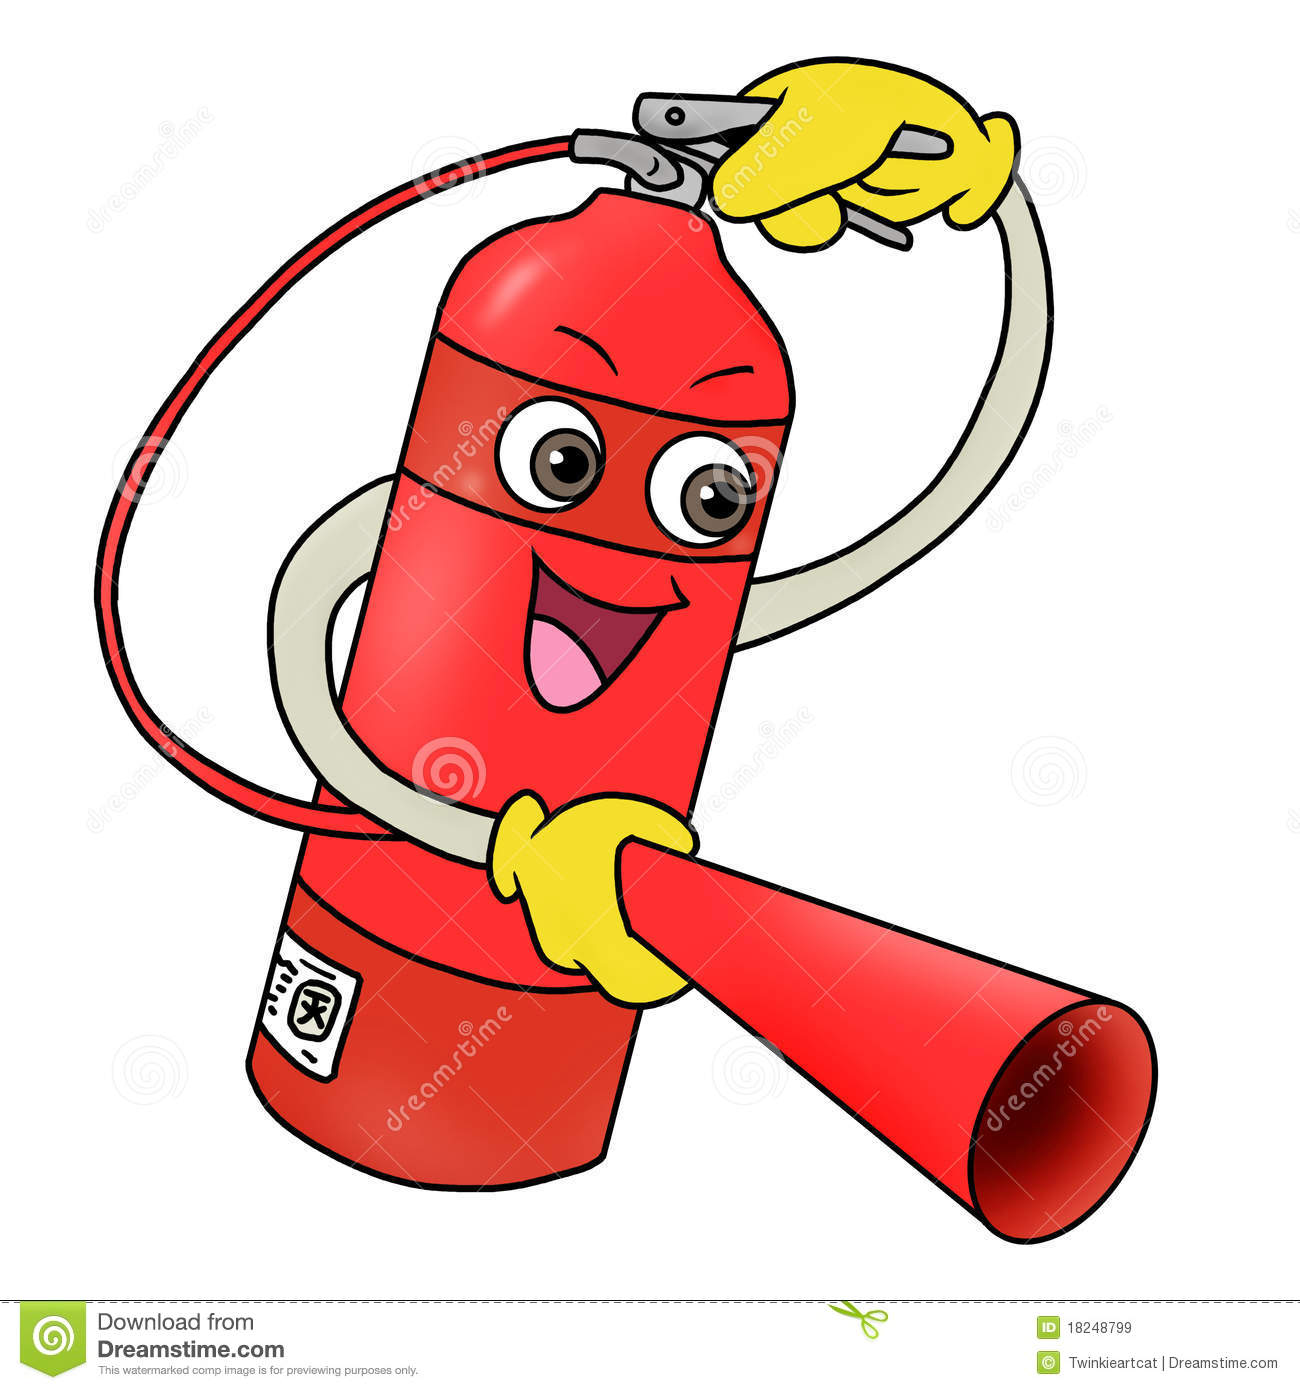 Fire Extinguisher Icon Royalty Free Stock Images - Image: 18248799